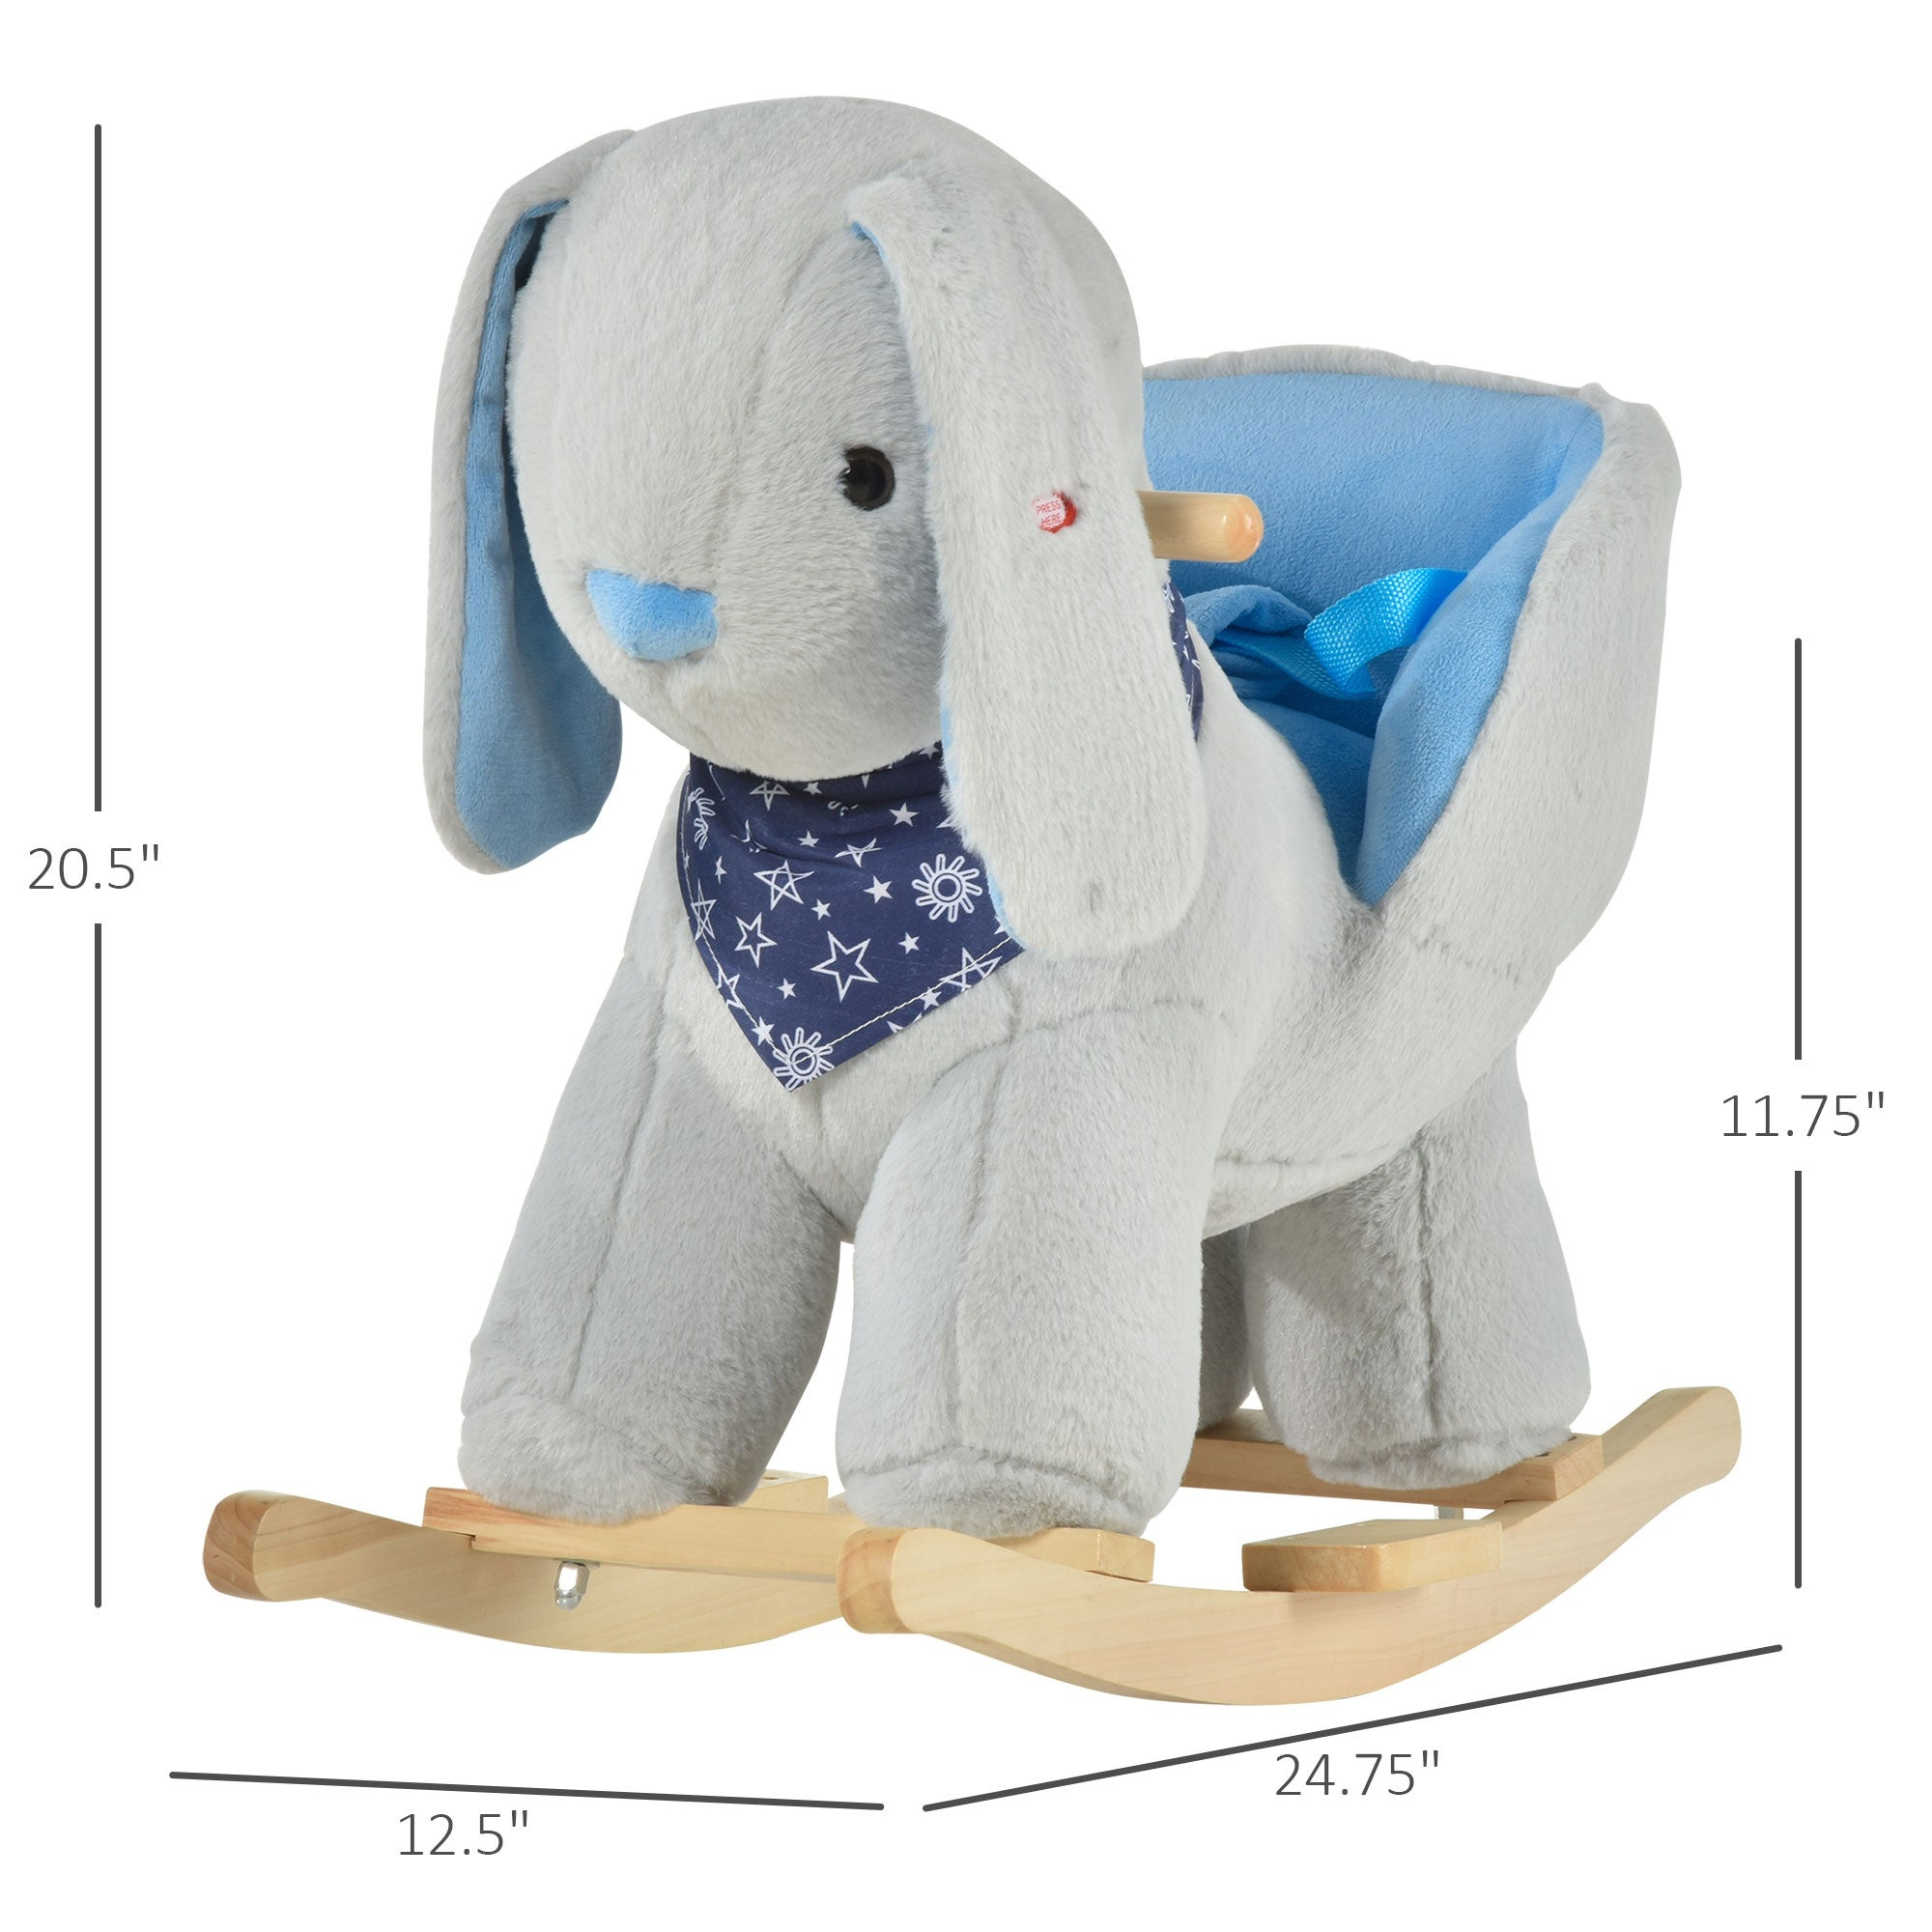 Qaba Kids Ride On Rocking Horse Toy Bunny Rocker With Fun Play Music Soft Plush Fabric For Children 18 36 Months Overstock 32192681